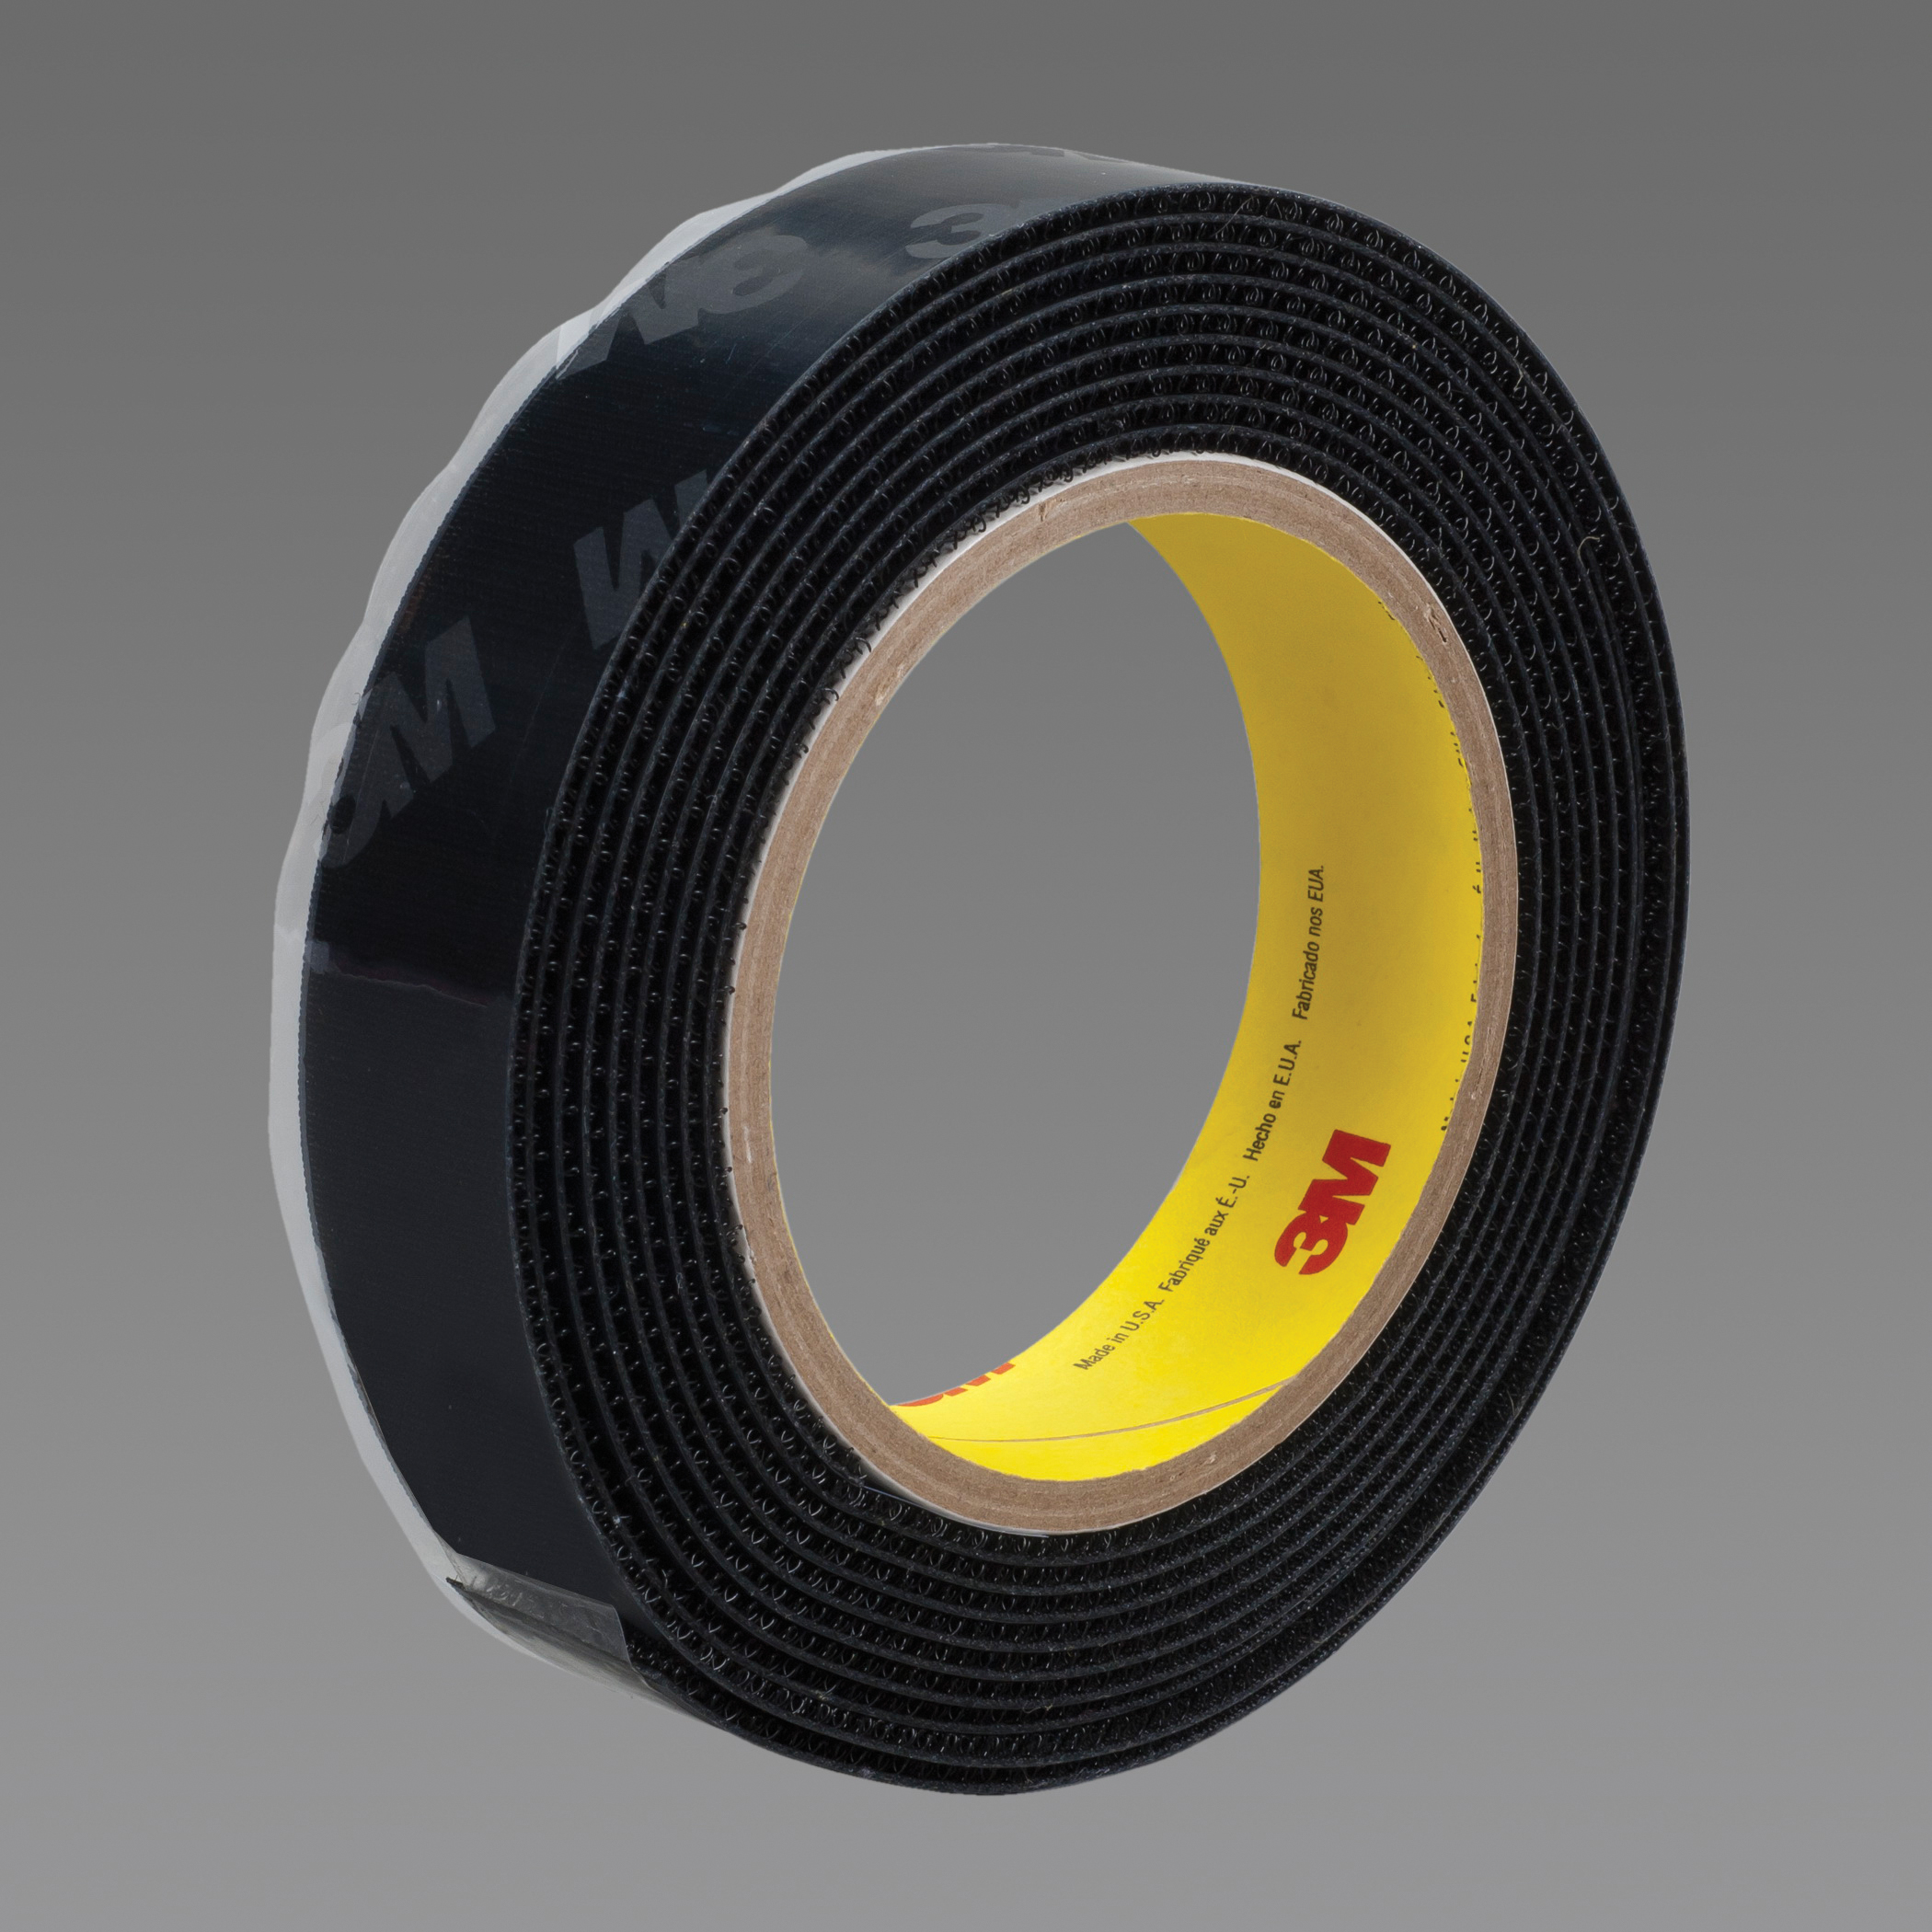 3M™ 021200-86257 Reclosable Hook Fastener Tape, 50 yd L x 5/8 in W, 0.15 in THK Engaged, Modified Rubber Adhesive, Woven Nylon Backing, Black